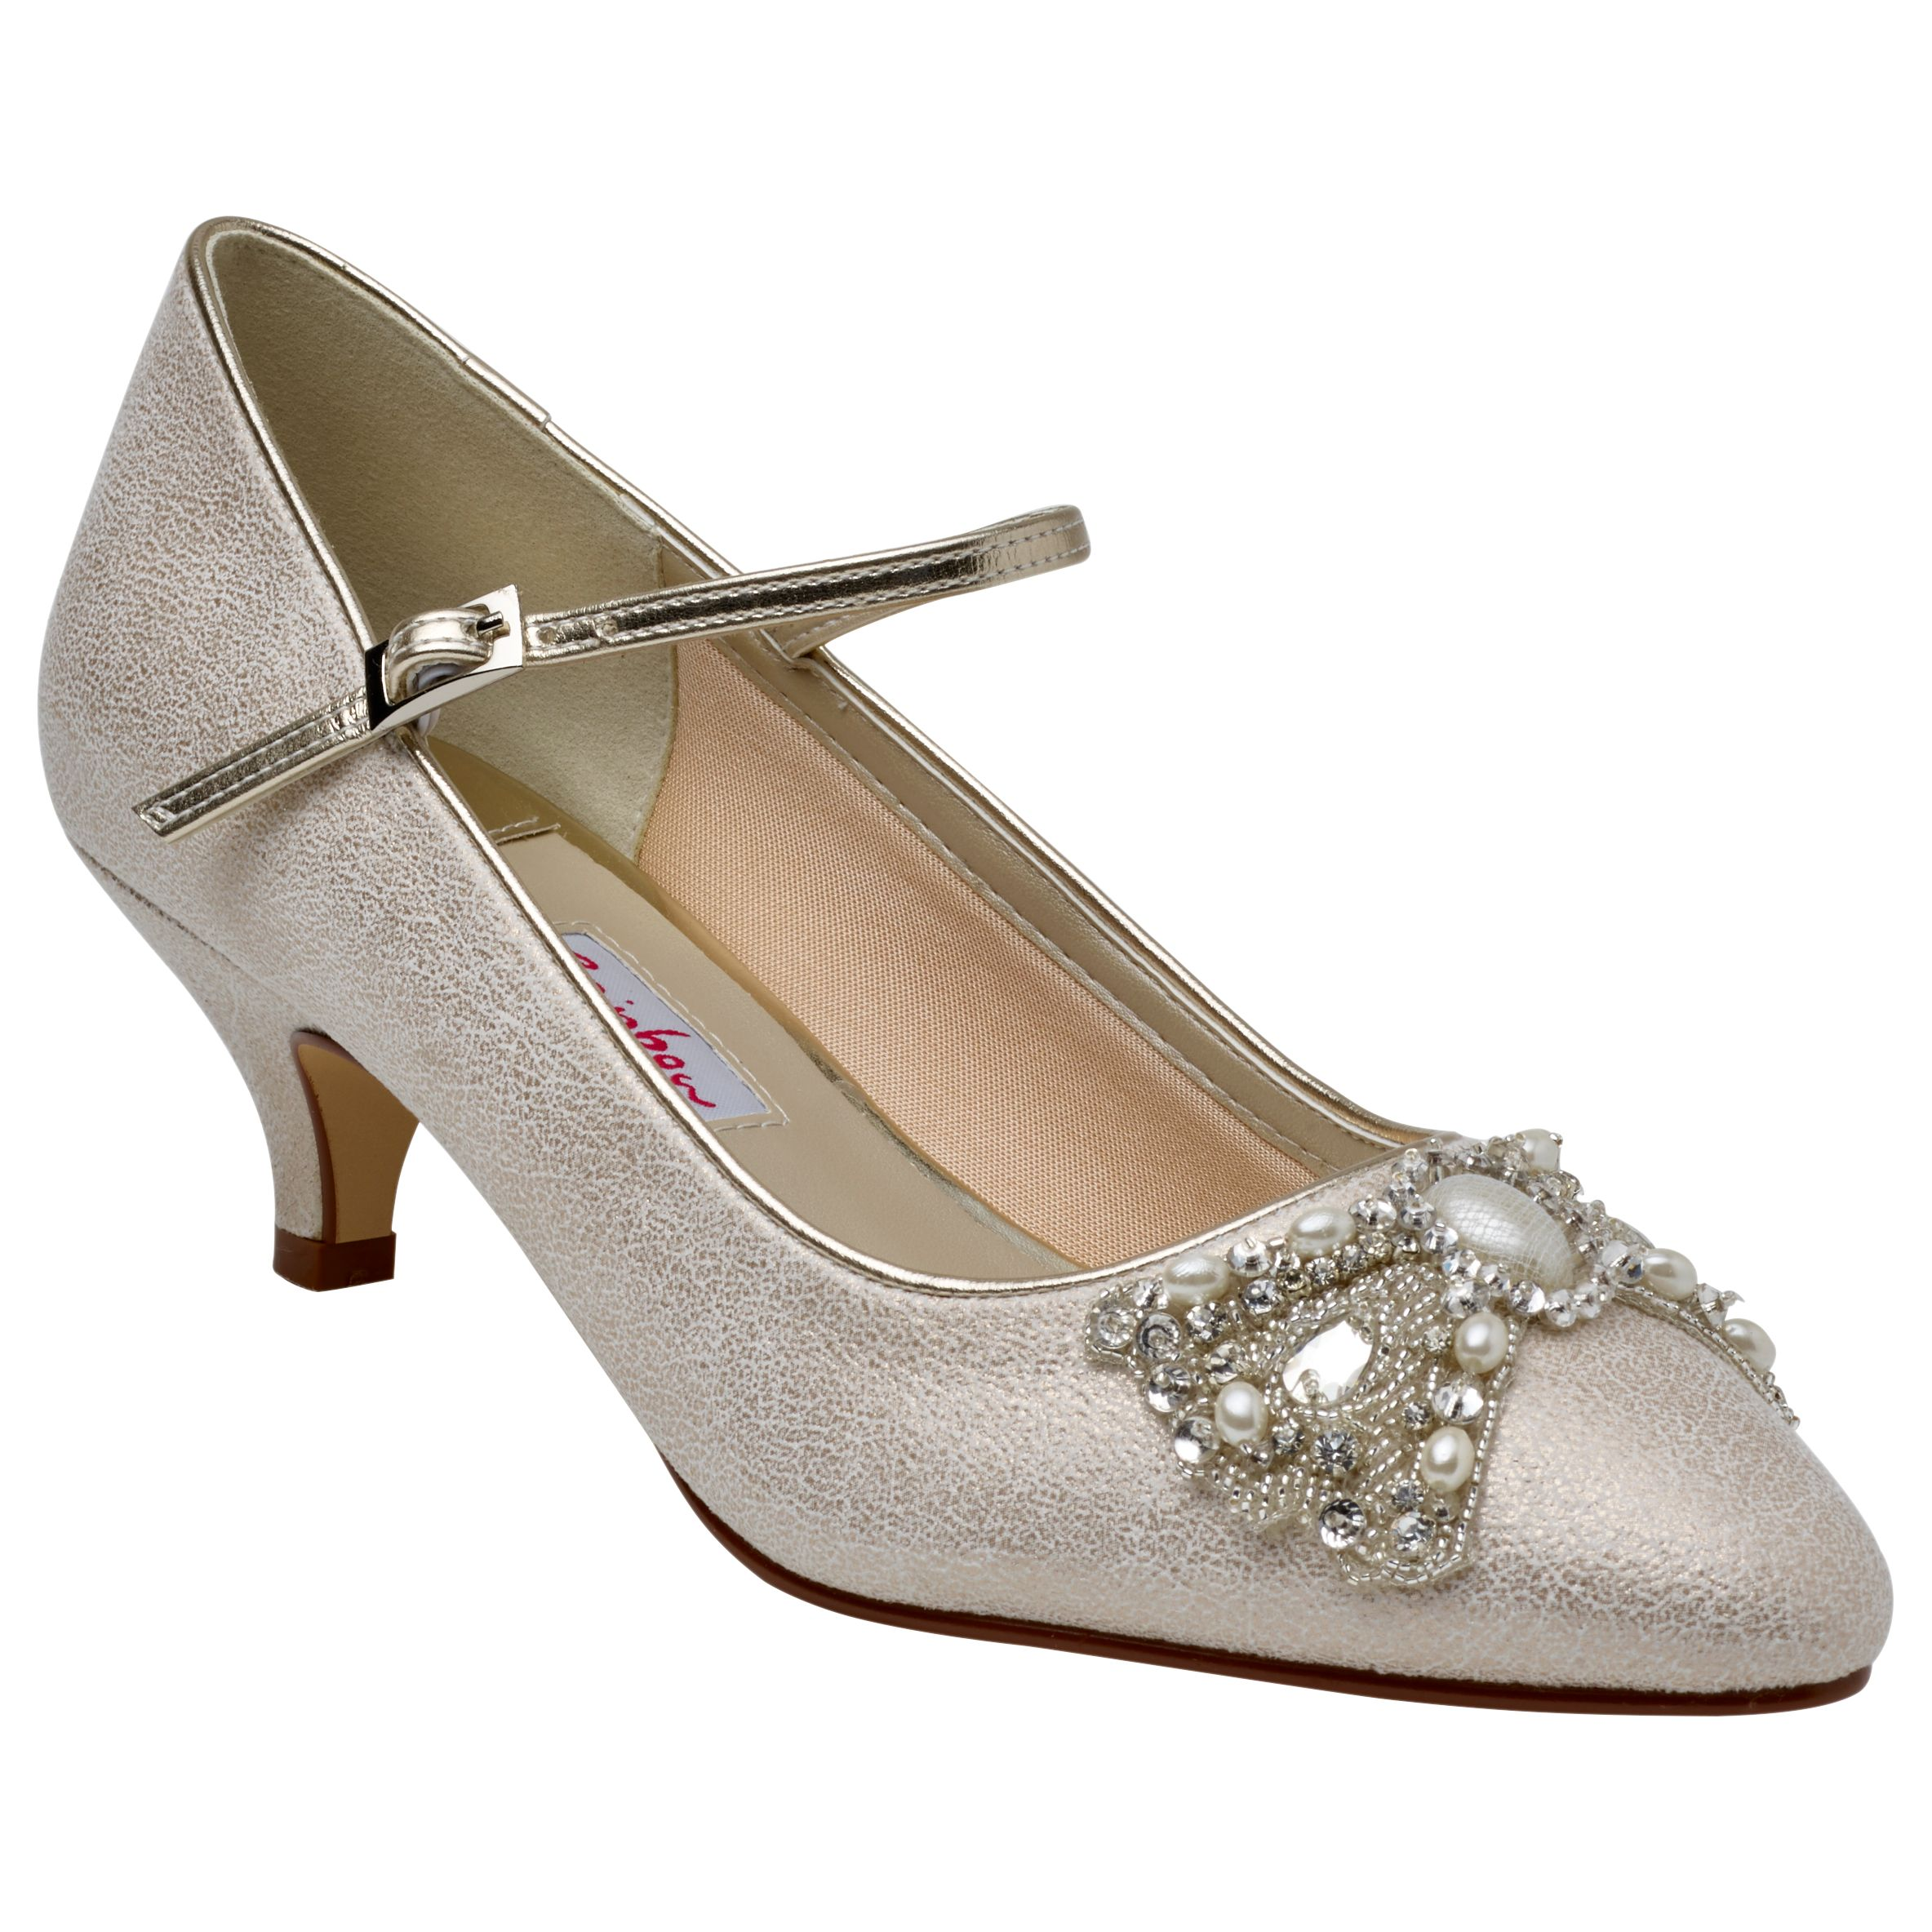 Rainbow Club Rainbow Club Anastacia Kitten Heel Embellished Court Shoes, Champagne